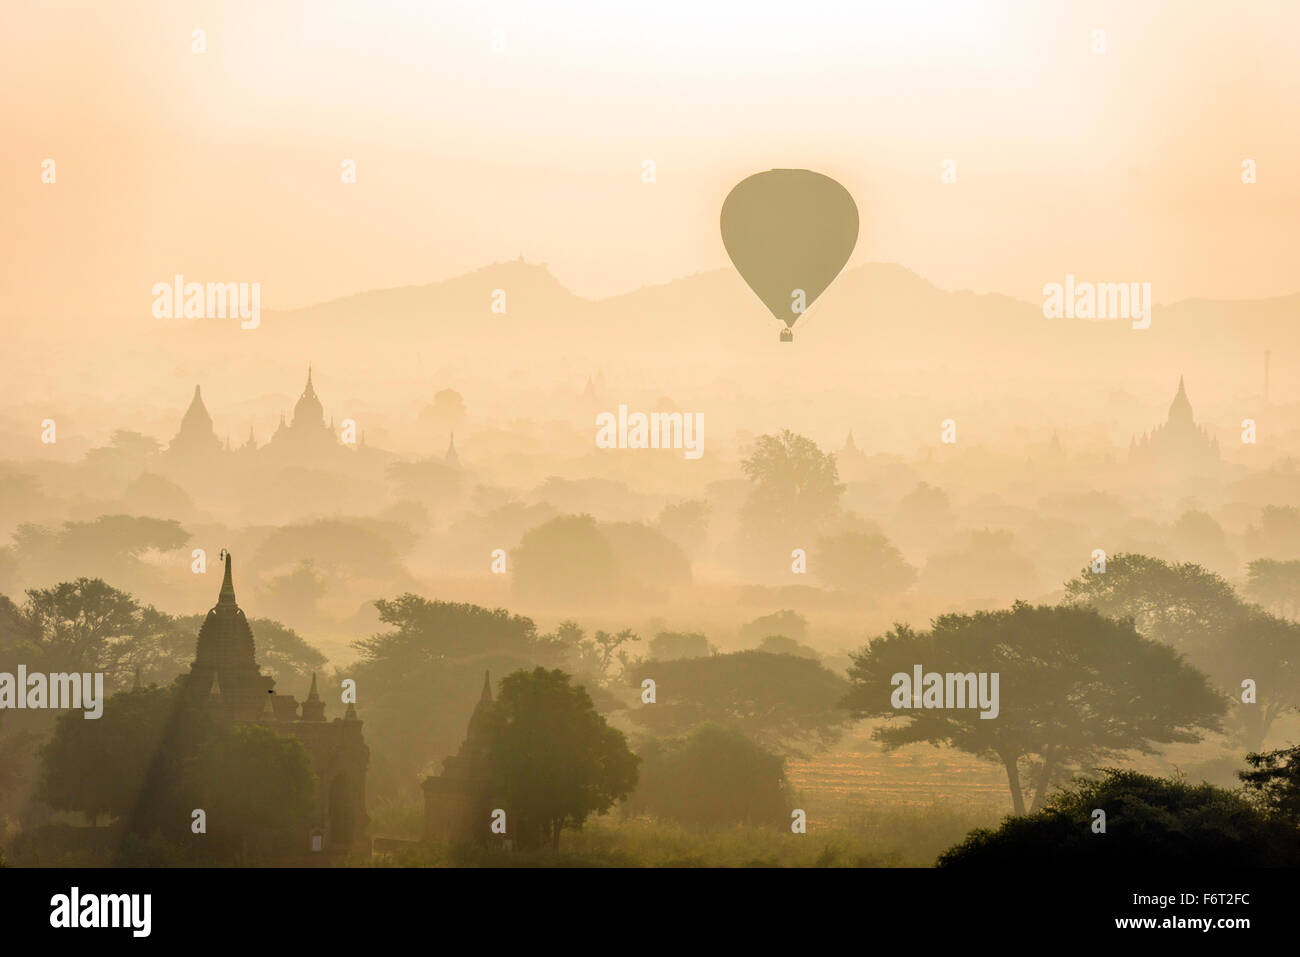 Aerial view of hot air balloons flying over towers - Stock Image